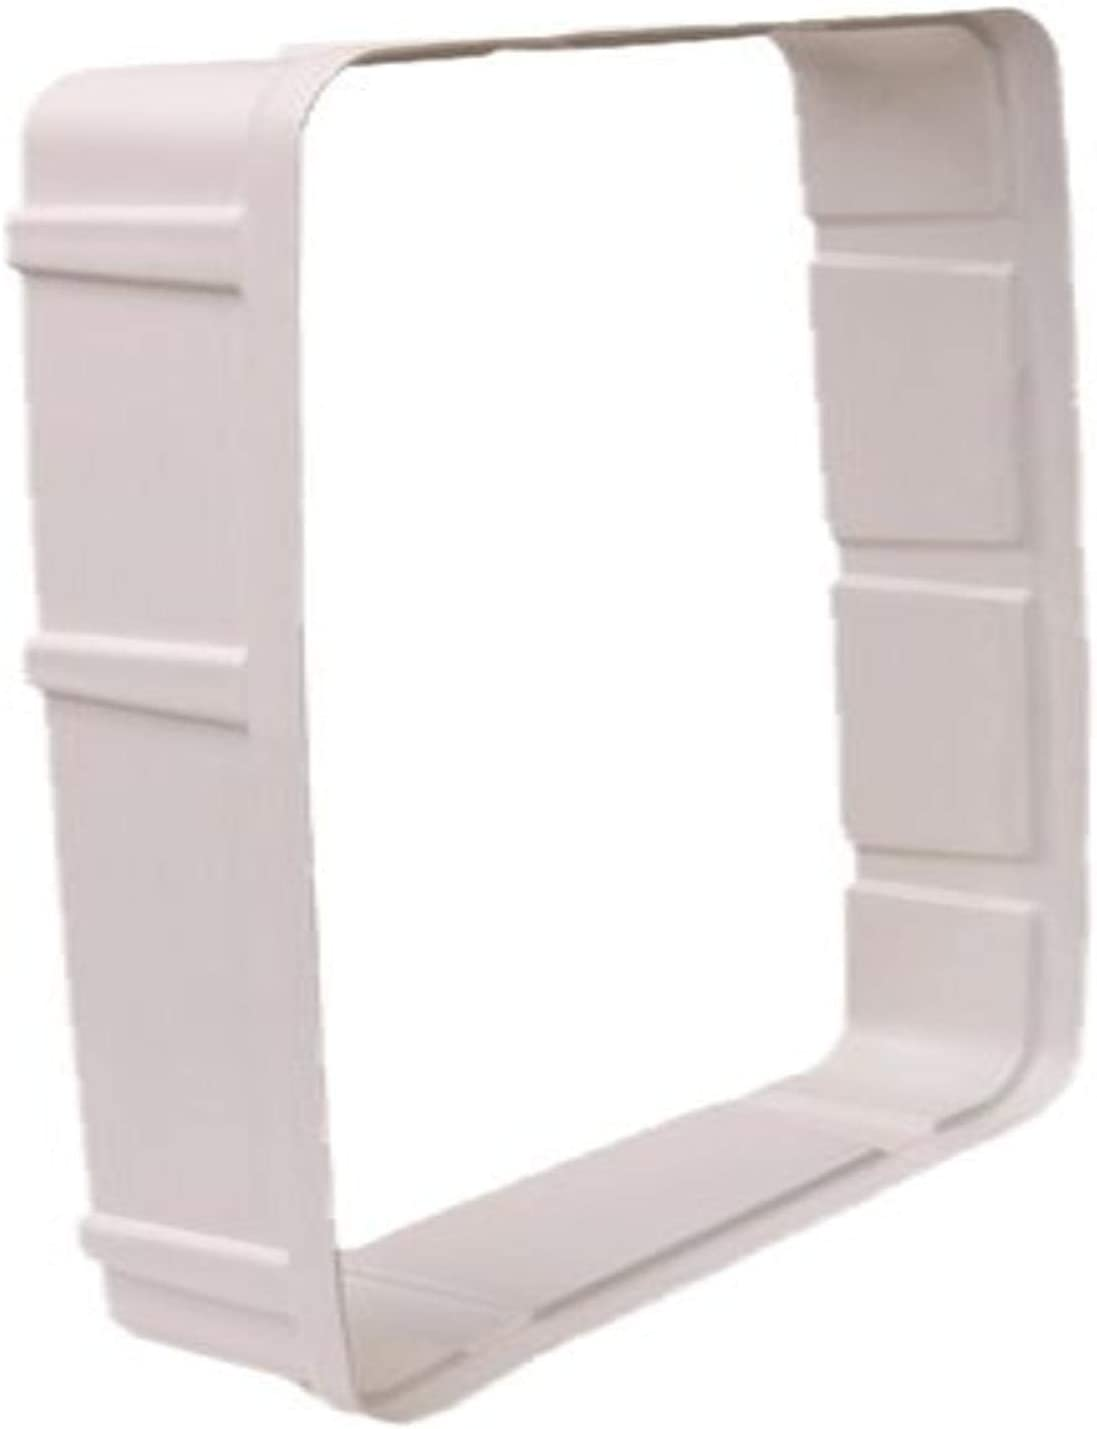 PetSafe Wall Tunnel Extension Electronic SmartDoor, Large, White